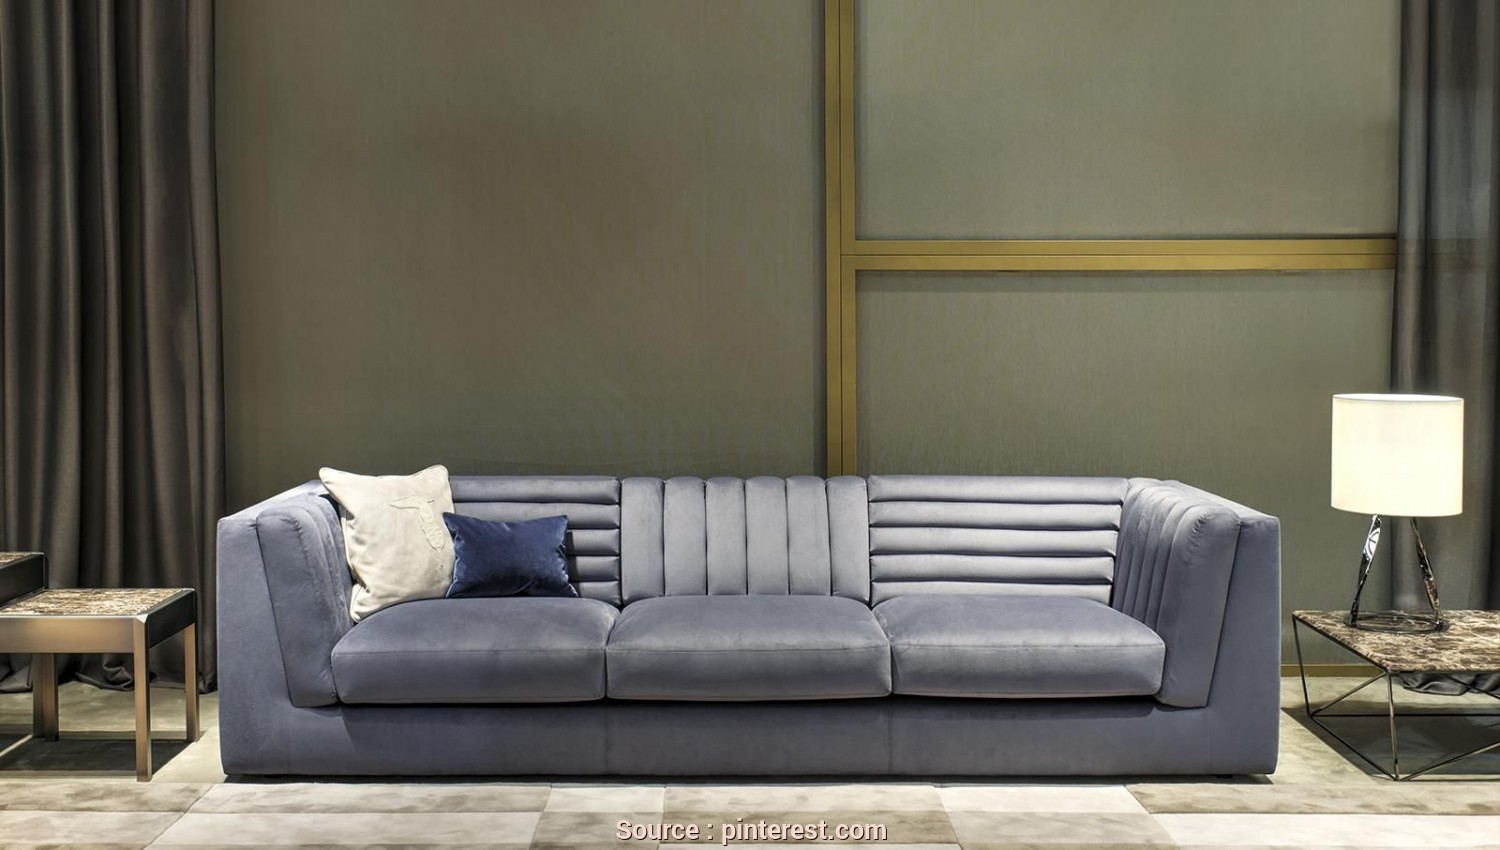 Divano Sofa Inegöl, Locale Lounge Sofa, Loveseat Sofa, Sofa Chair, Couches, Luxury Sofa, Luxury Living